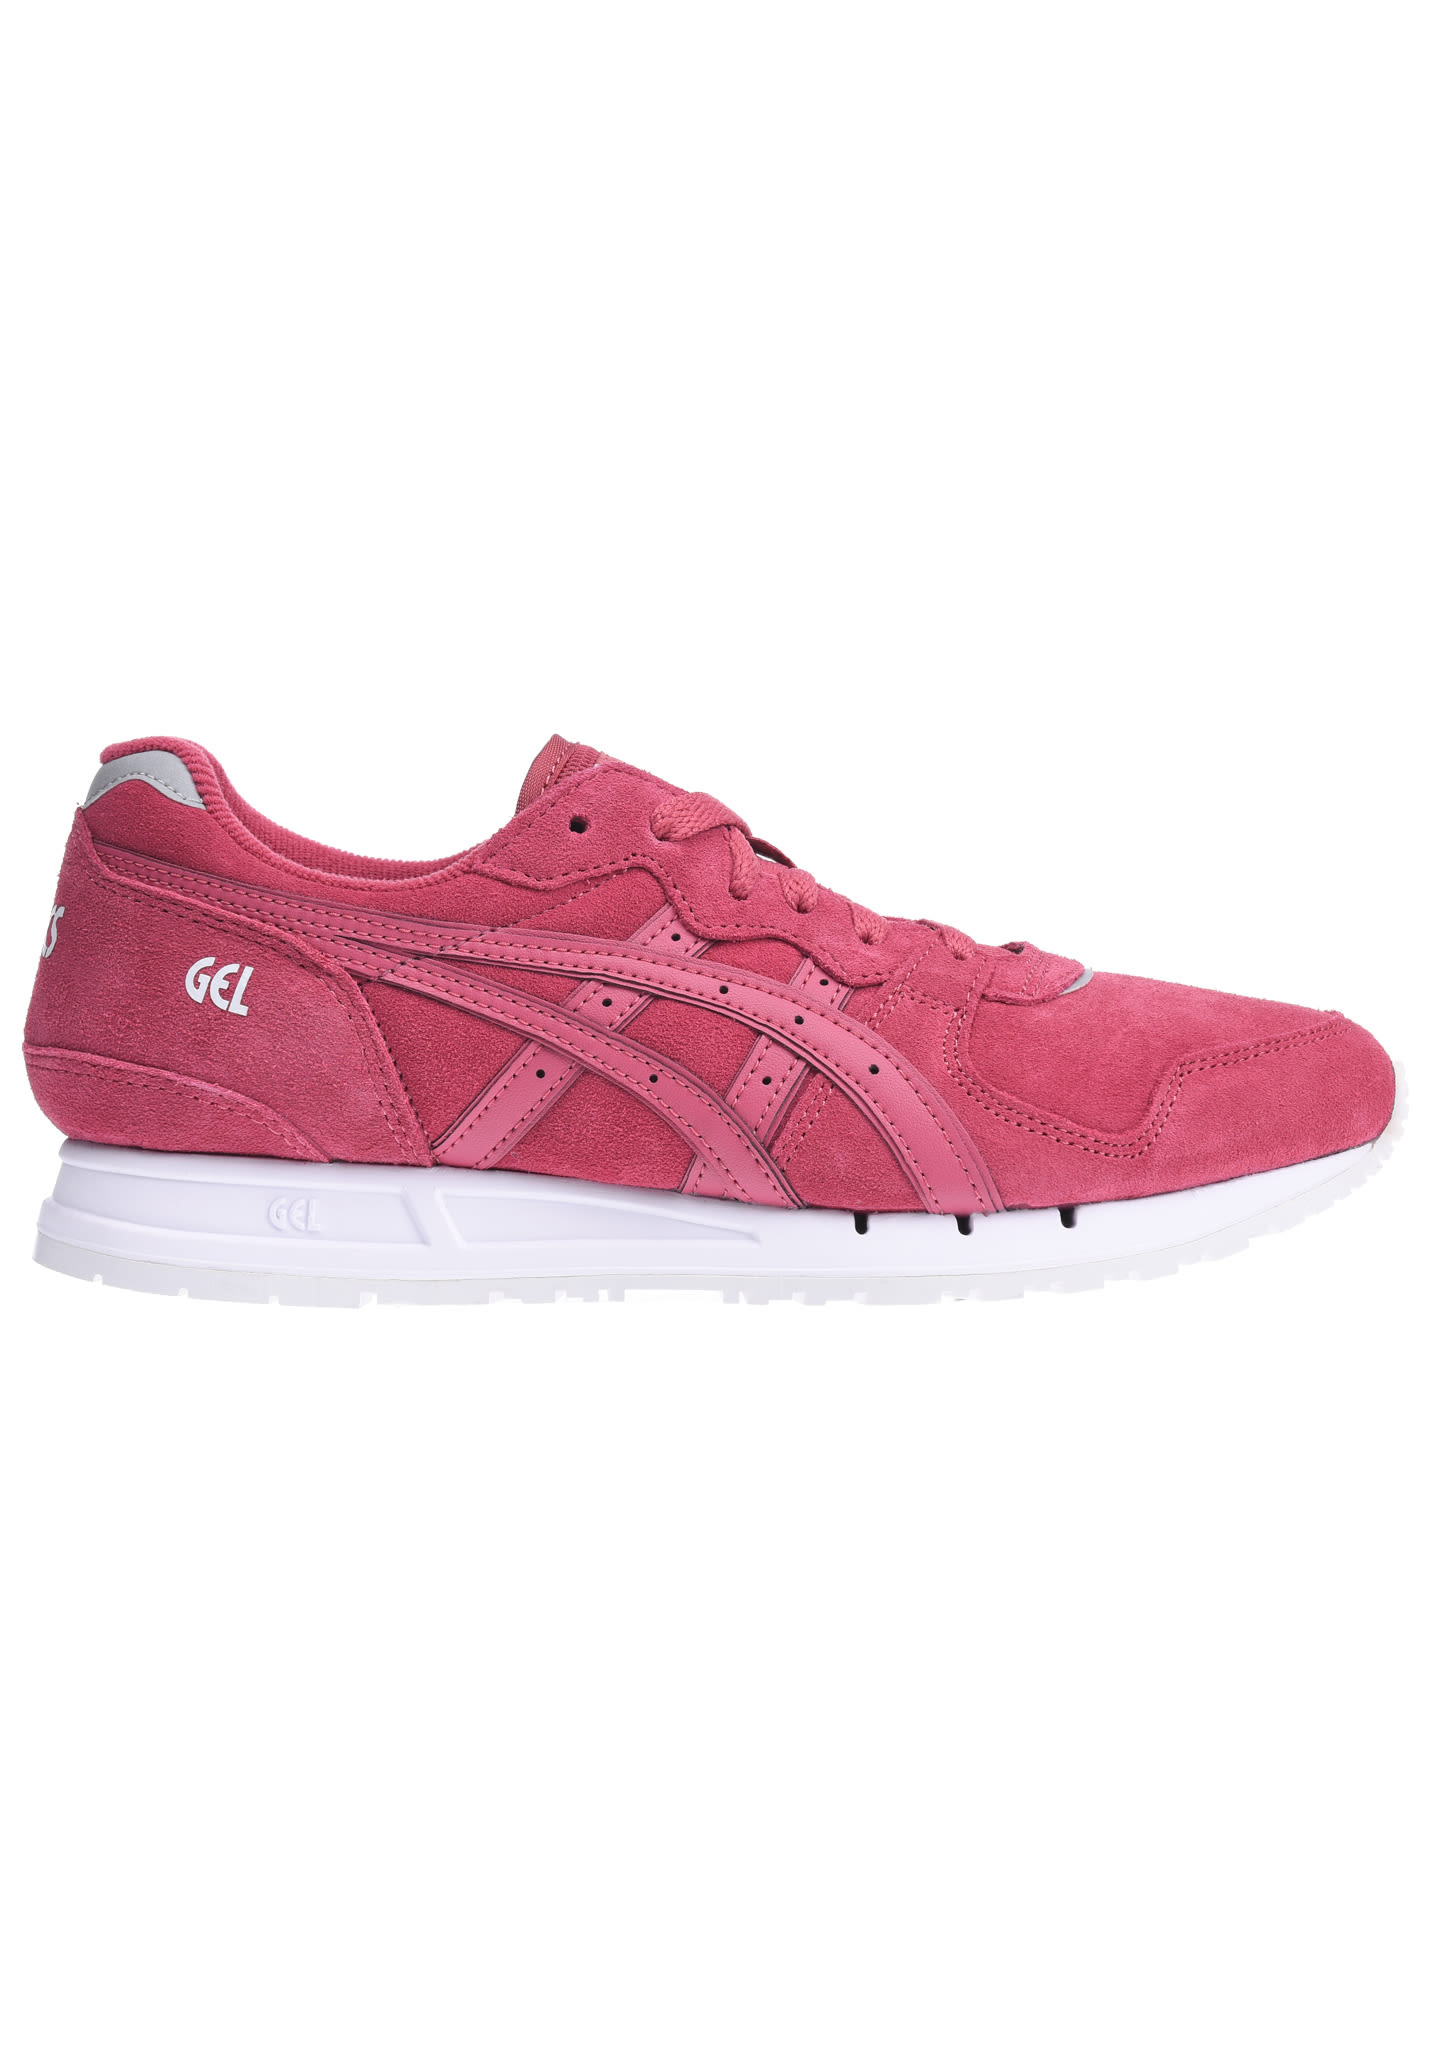 Womens Formateurs De Gel, De Movimentum Asics Magenta